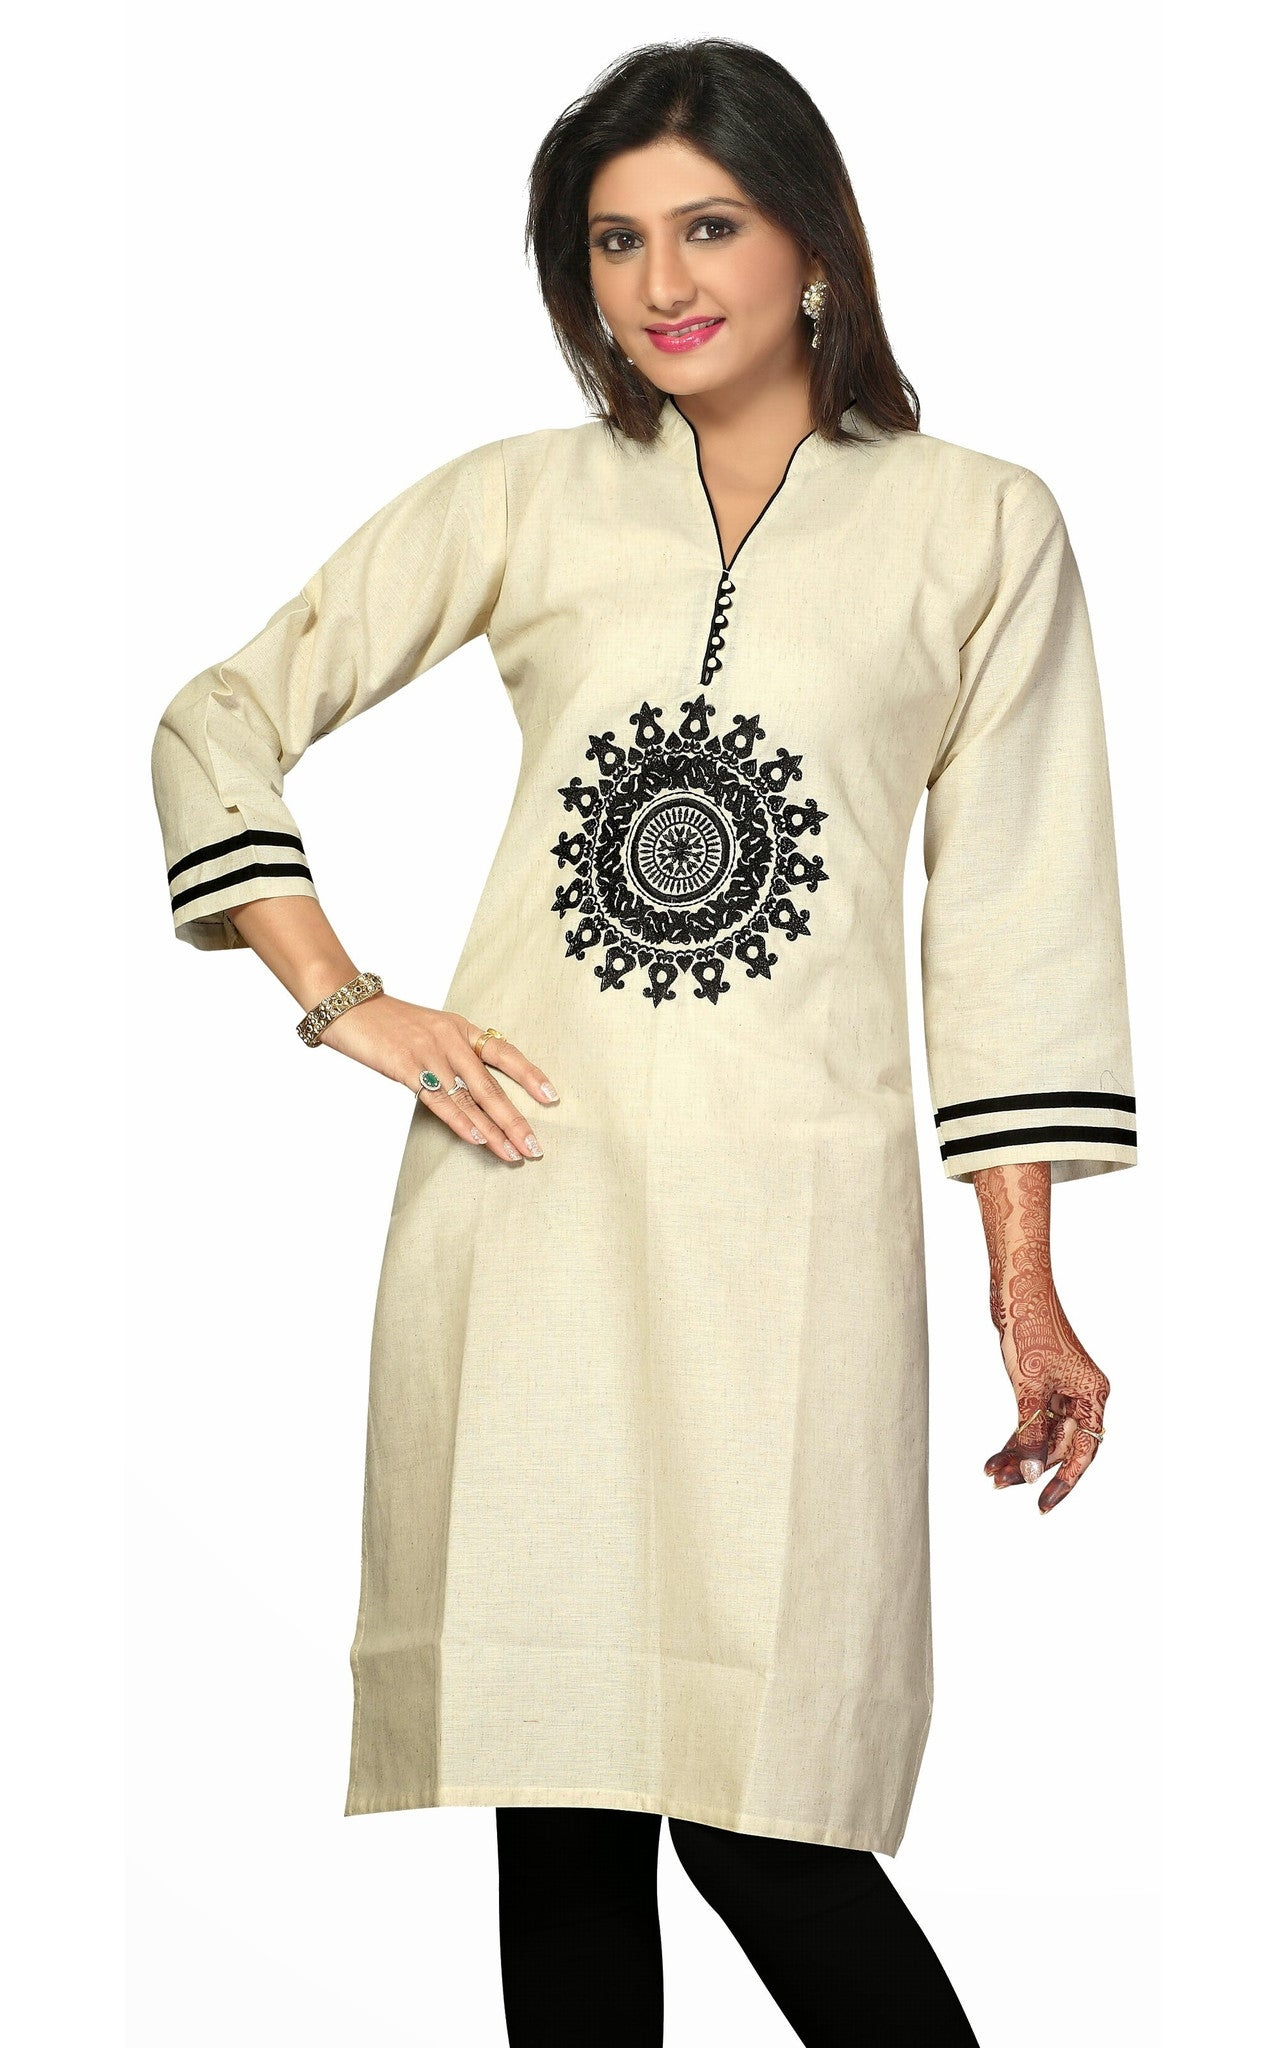 Orchid White Khadi Cotton 3/4 Sleeves Kurti stylish V Neck with buttons